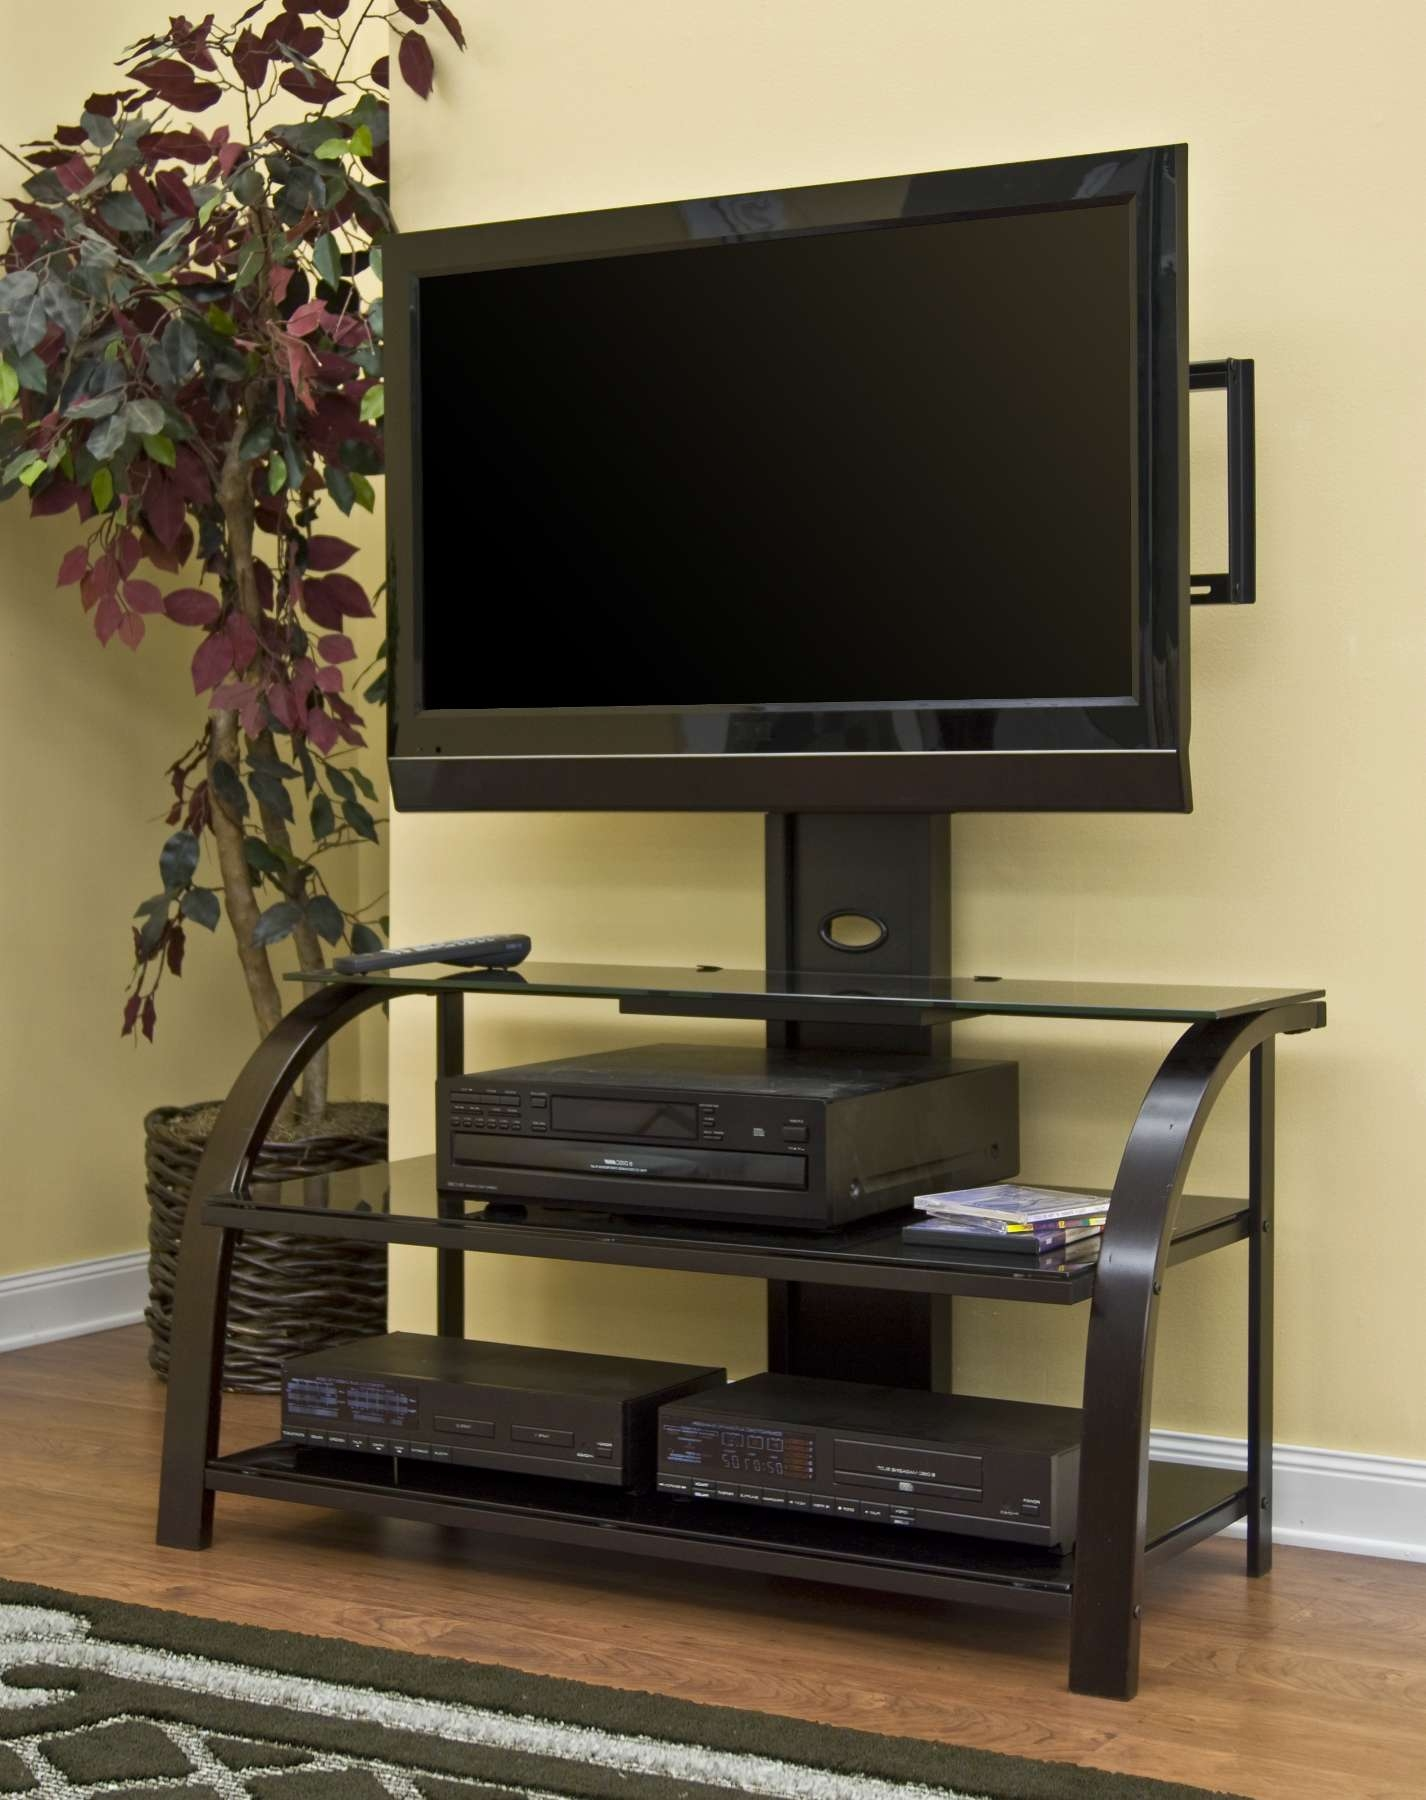 Furnitures : Tv Stand With Mount Inch Furniture The Living Room Intended For Denver Tv Stands (View 15 of 15)